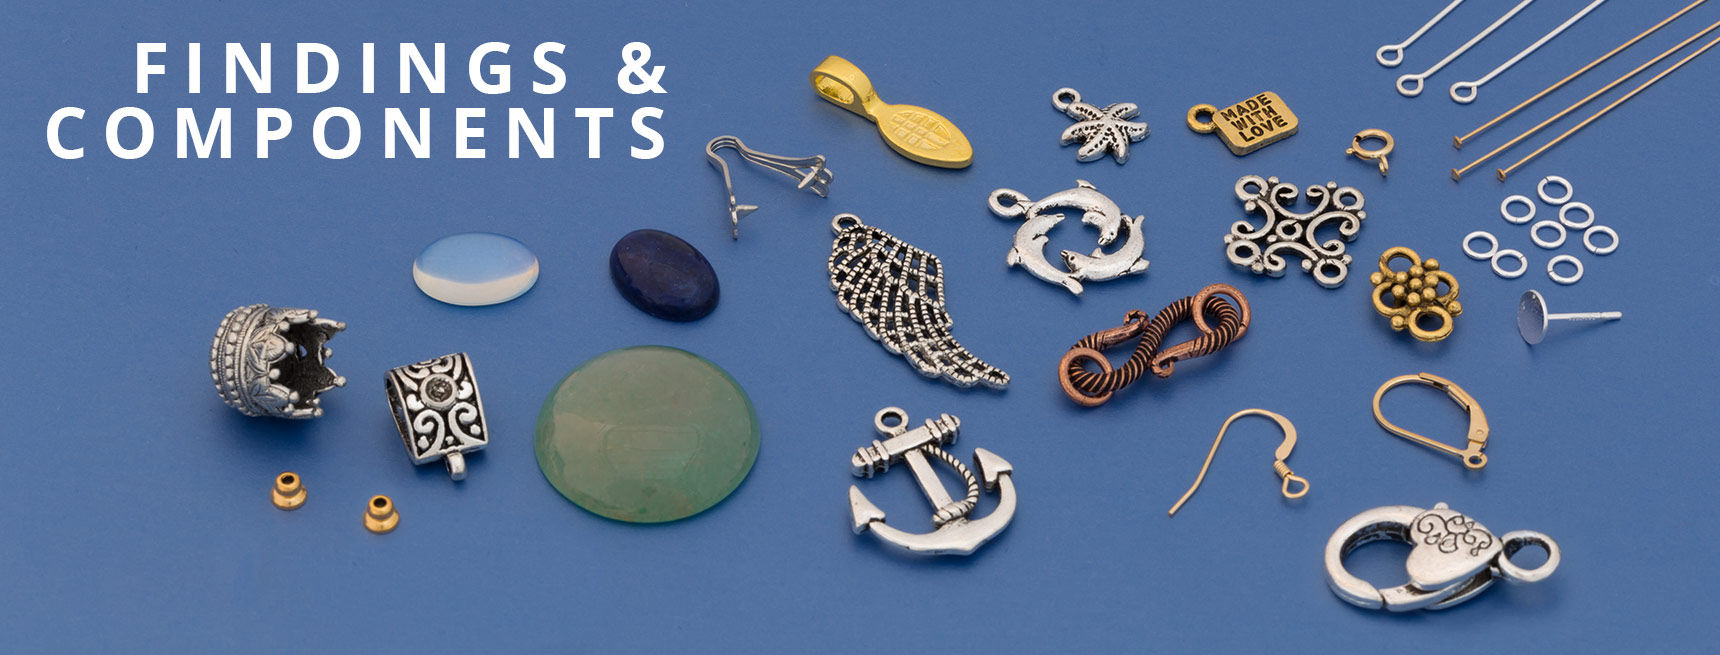 Shop for Findings & Components for Jewelry Making